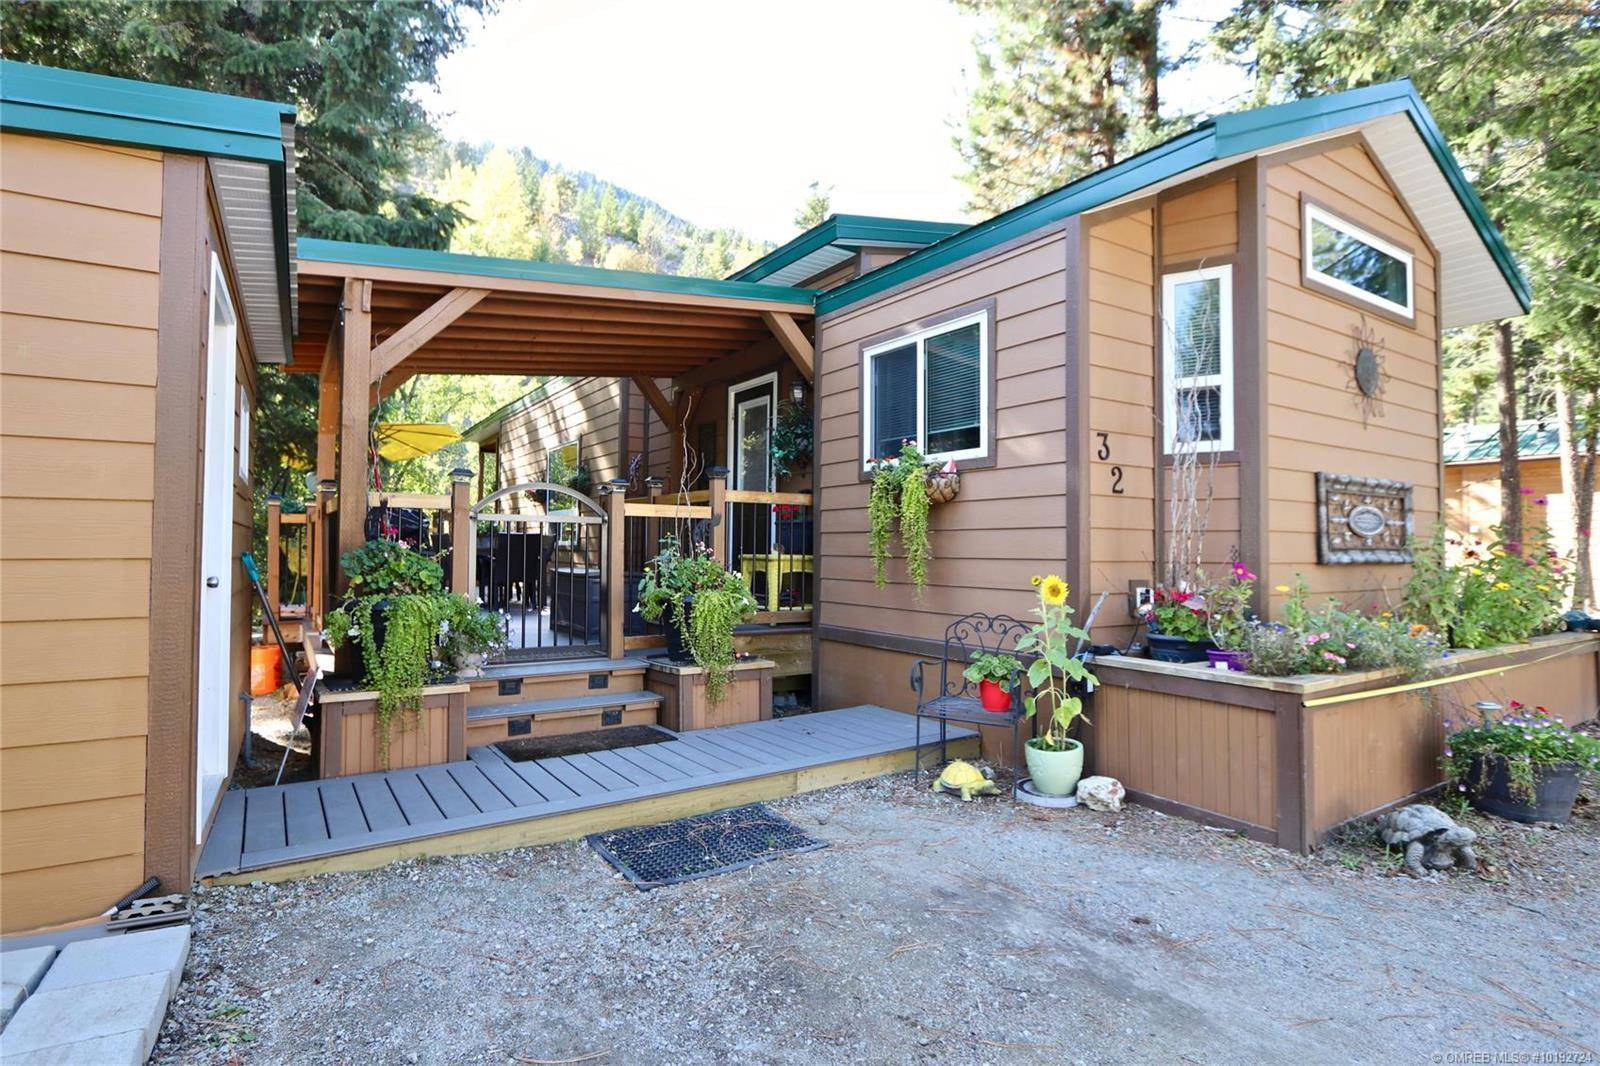 Home for sale at 4835 Paradise Valley Dr Unit 32 Peachland British Columbia - MLS: 10192724